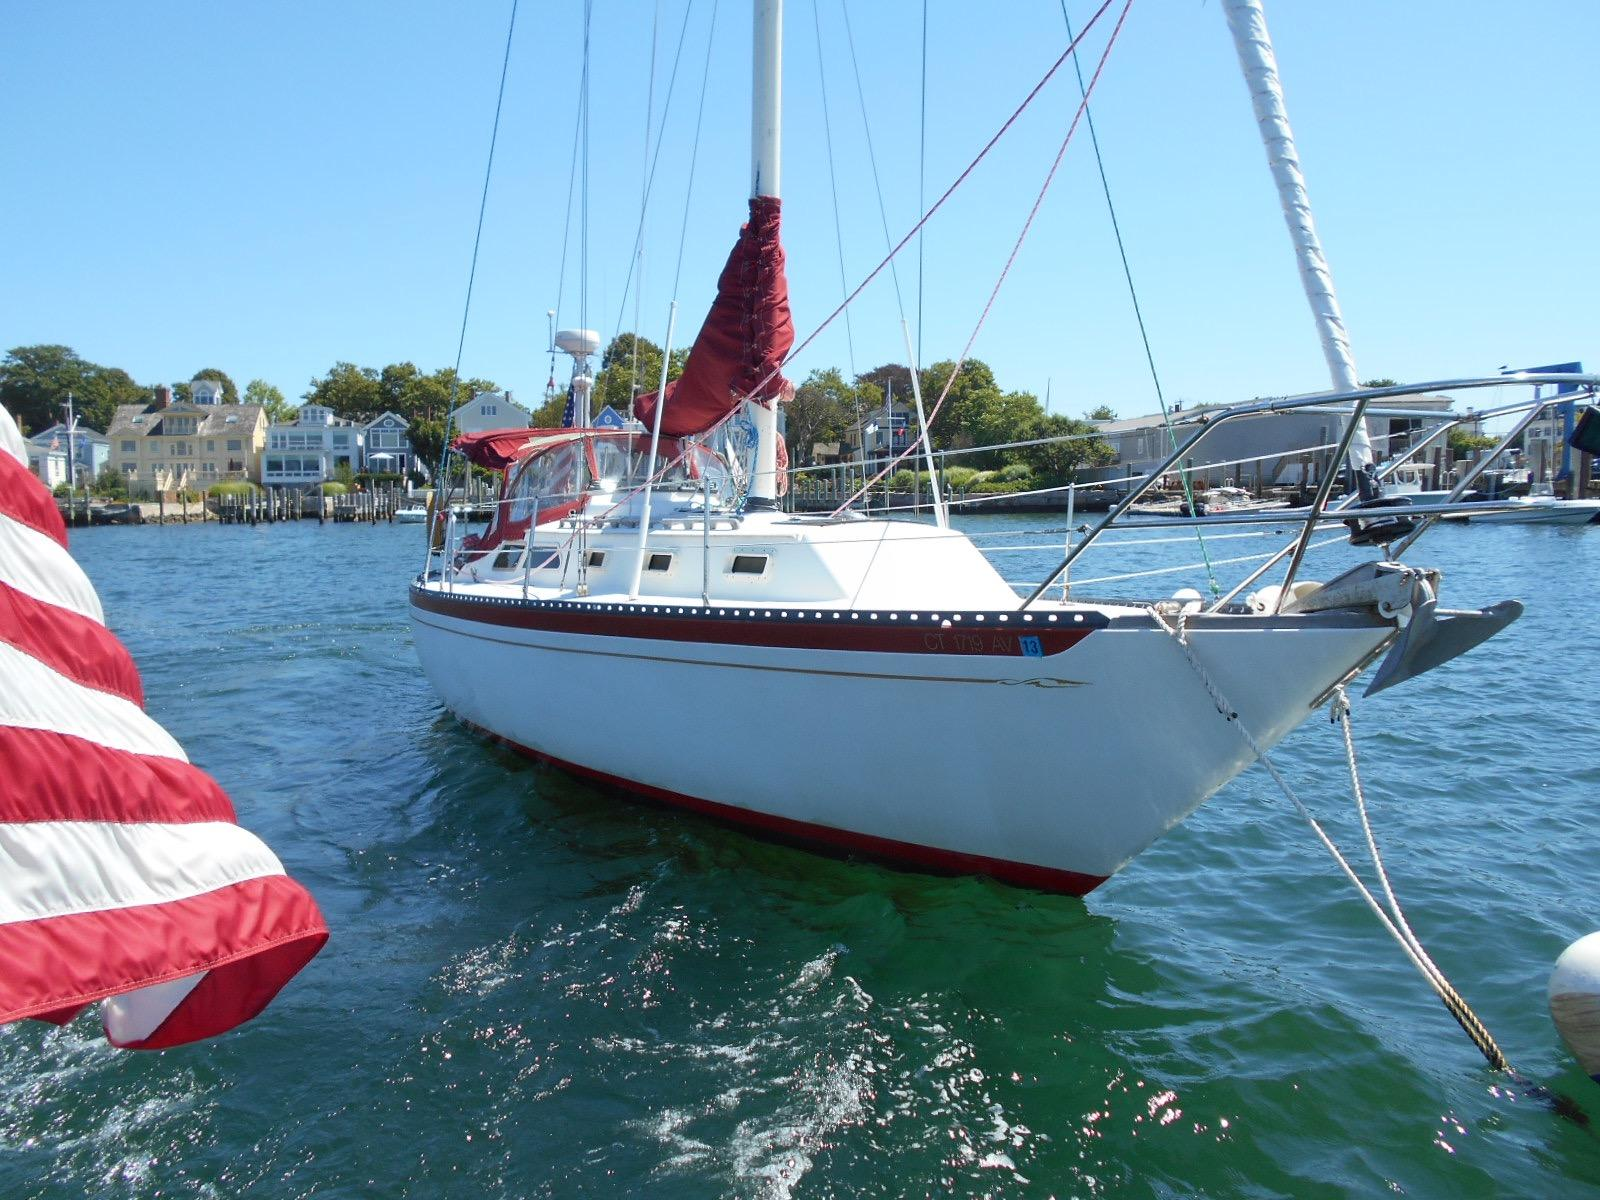 1979 Islander 36 Sail Boat For Sale - www.yachtworld.com